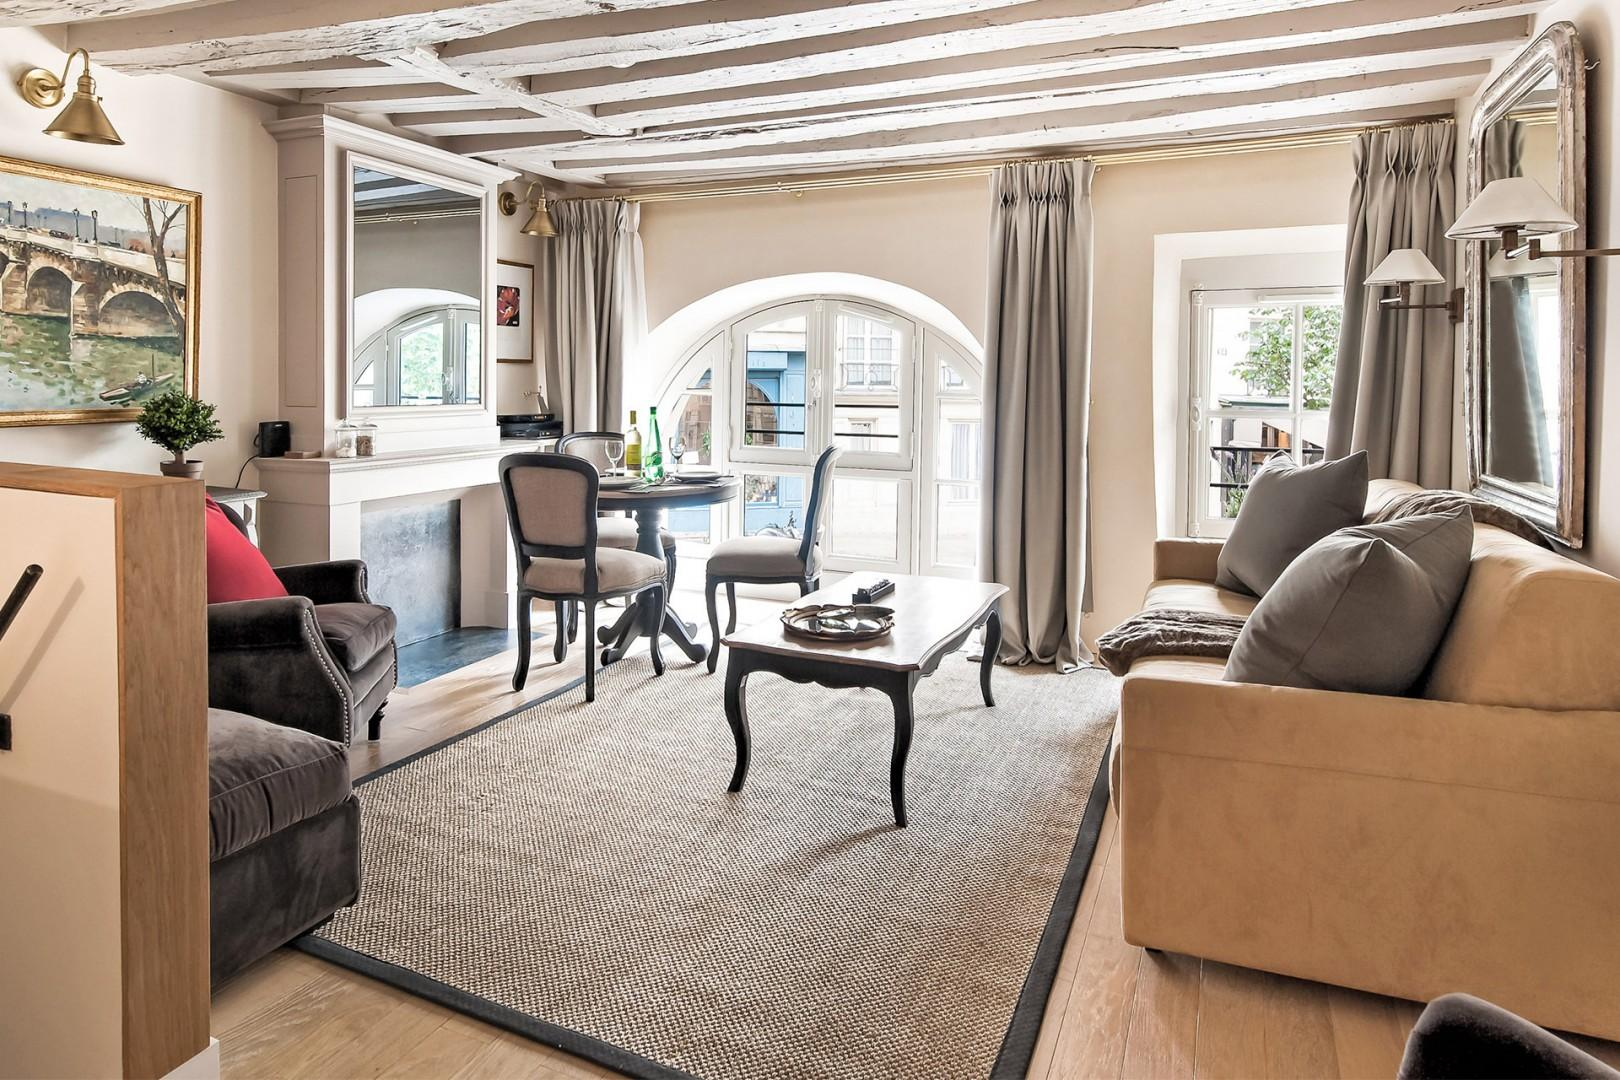 Step into the living room on the second floor, with beautiful wooden beams.